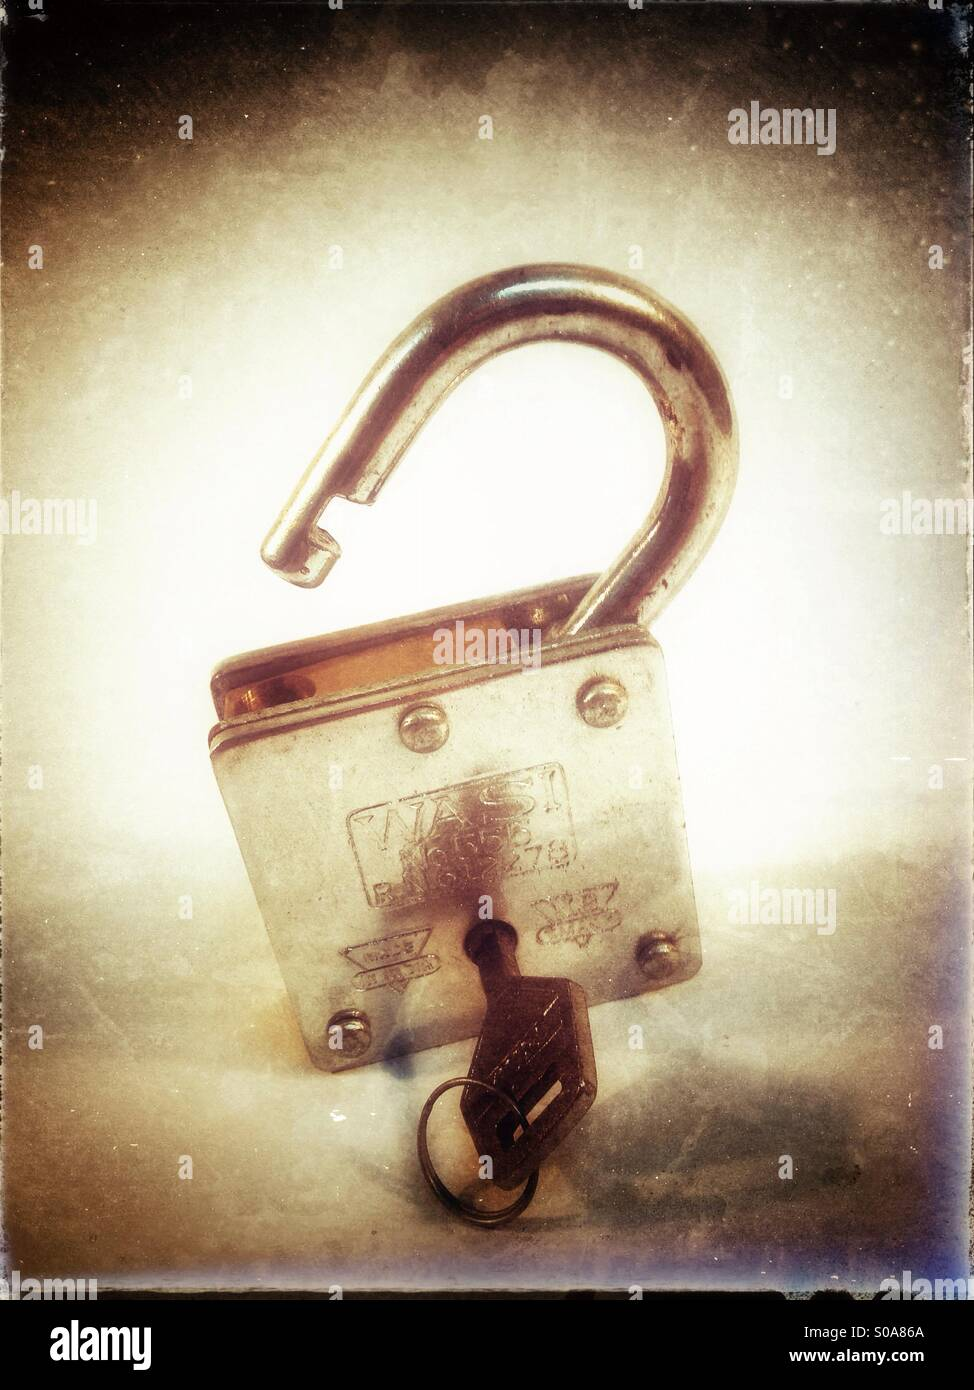 Lock and key. Lock open. - Stock Image